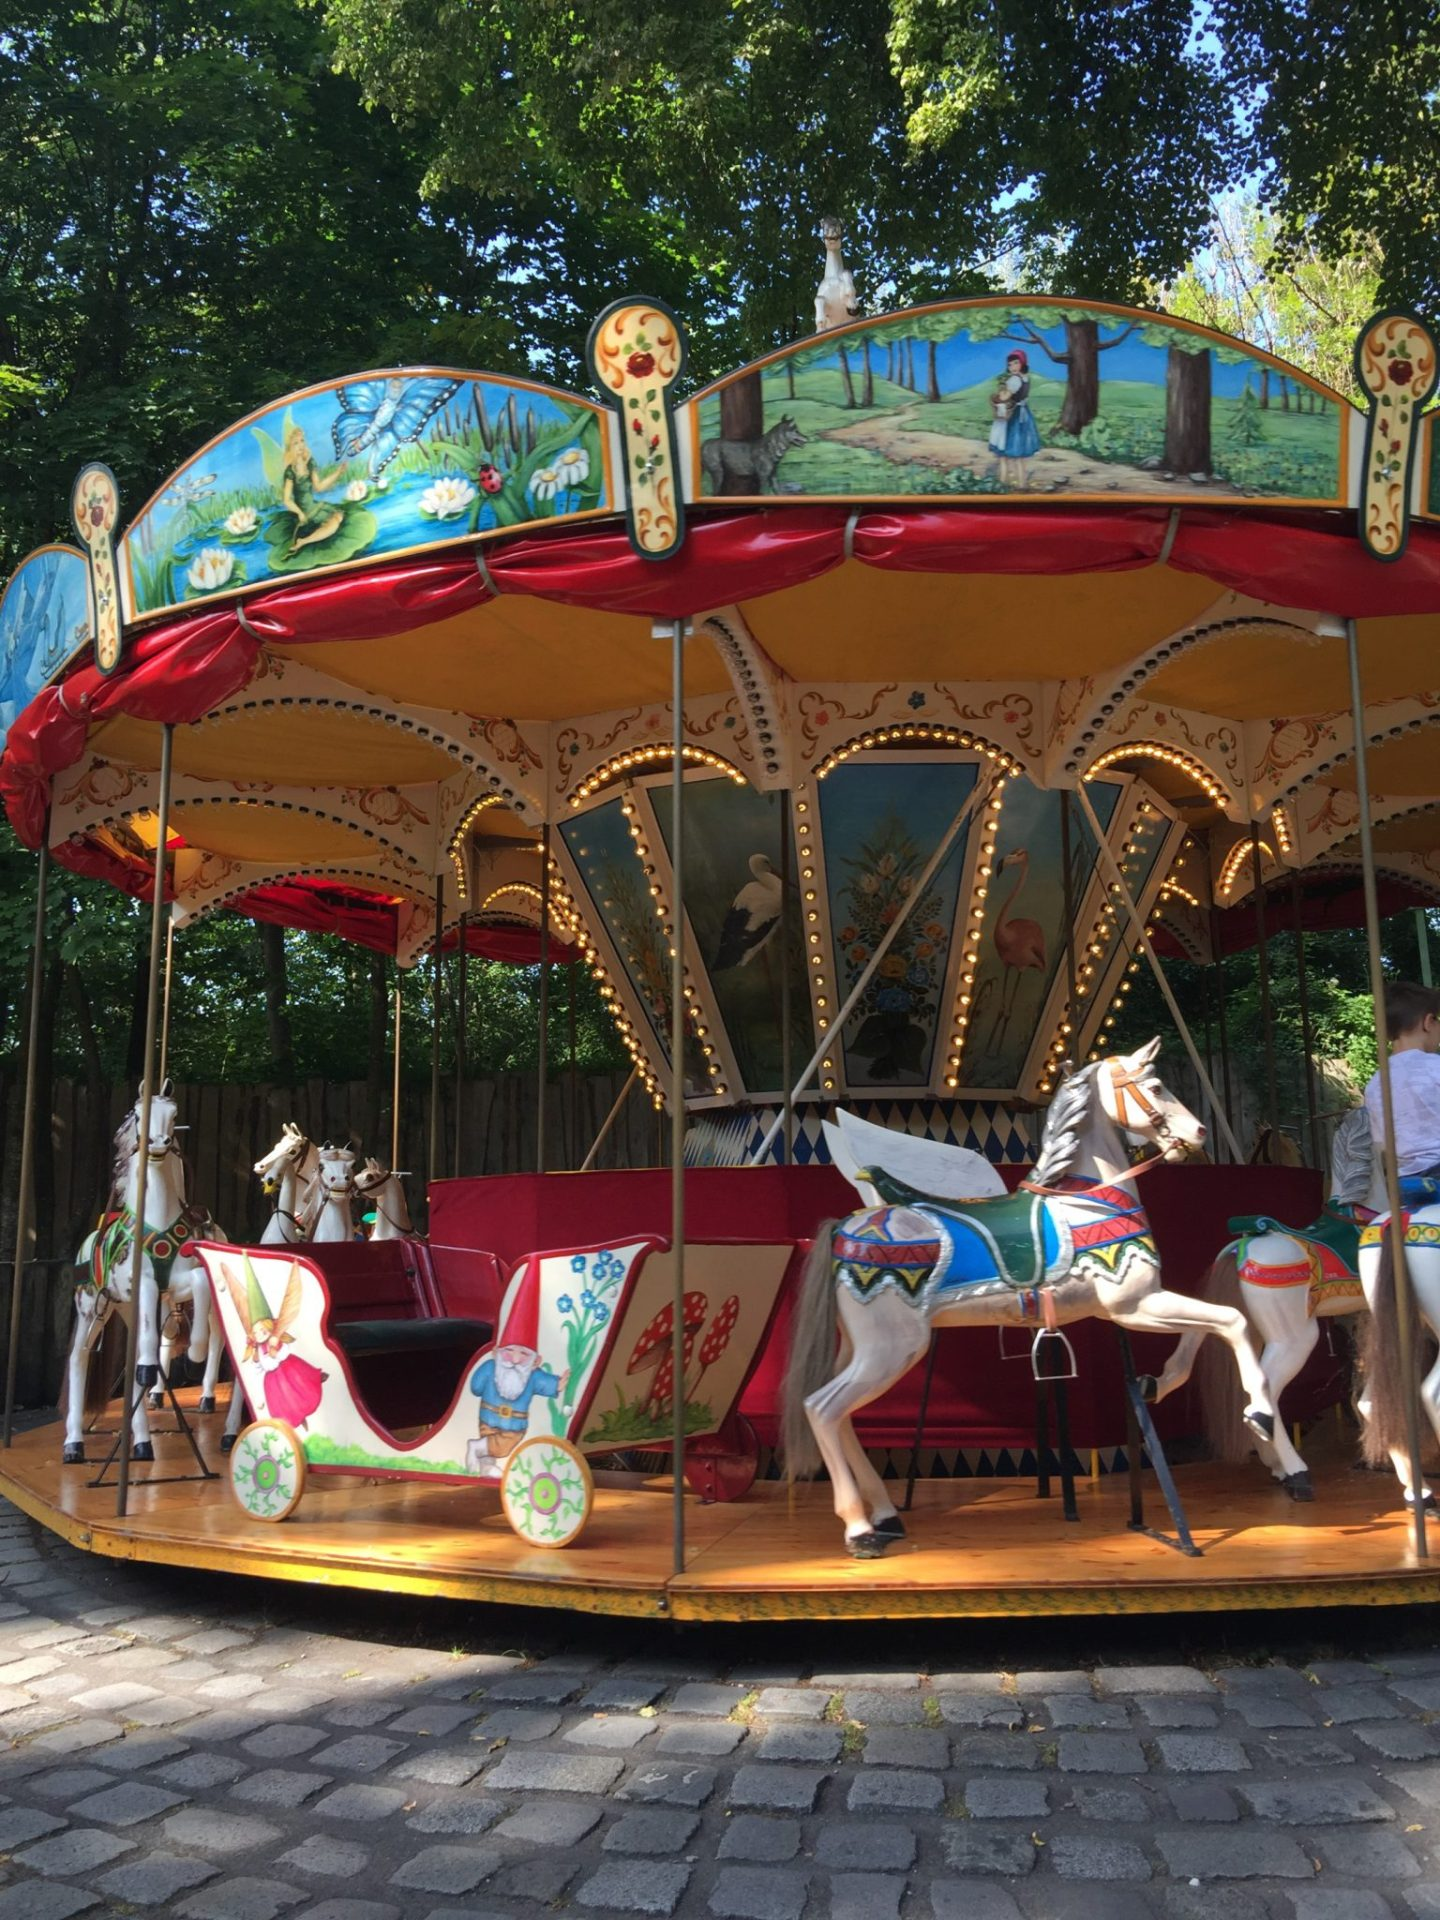 Carousel in the Hellabrunn Zoo